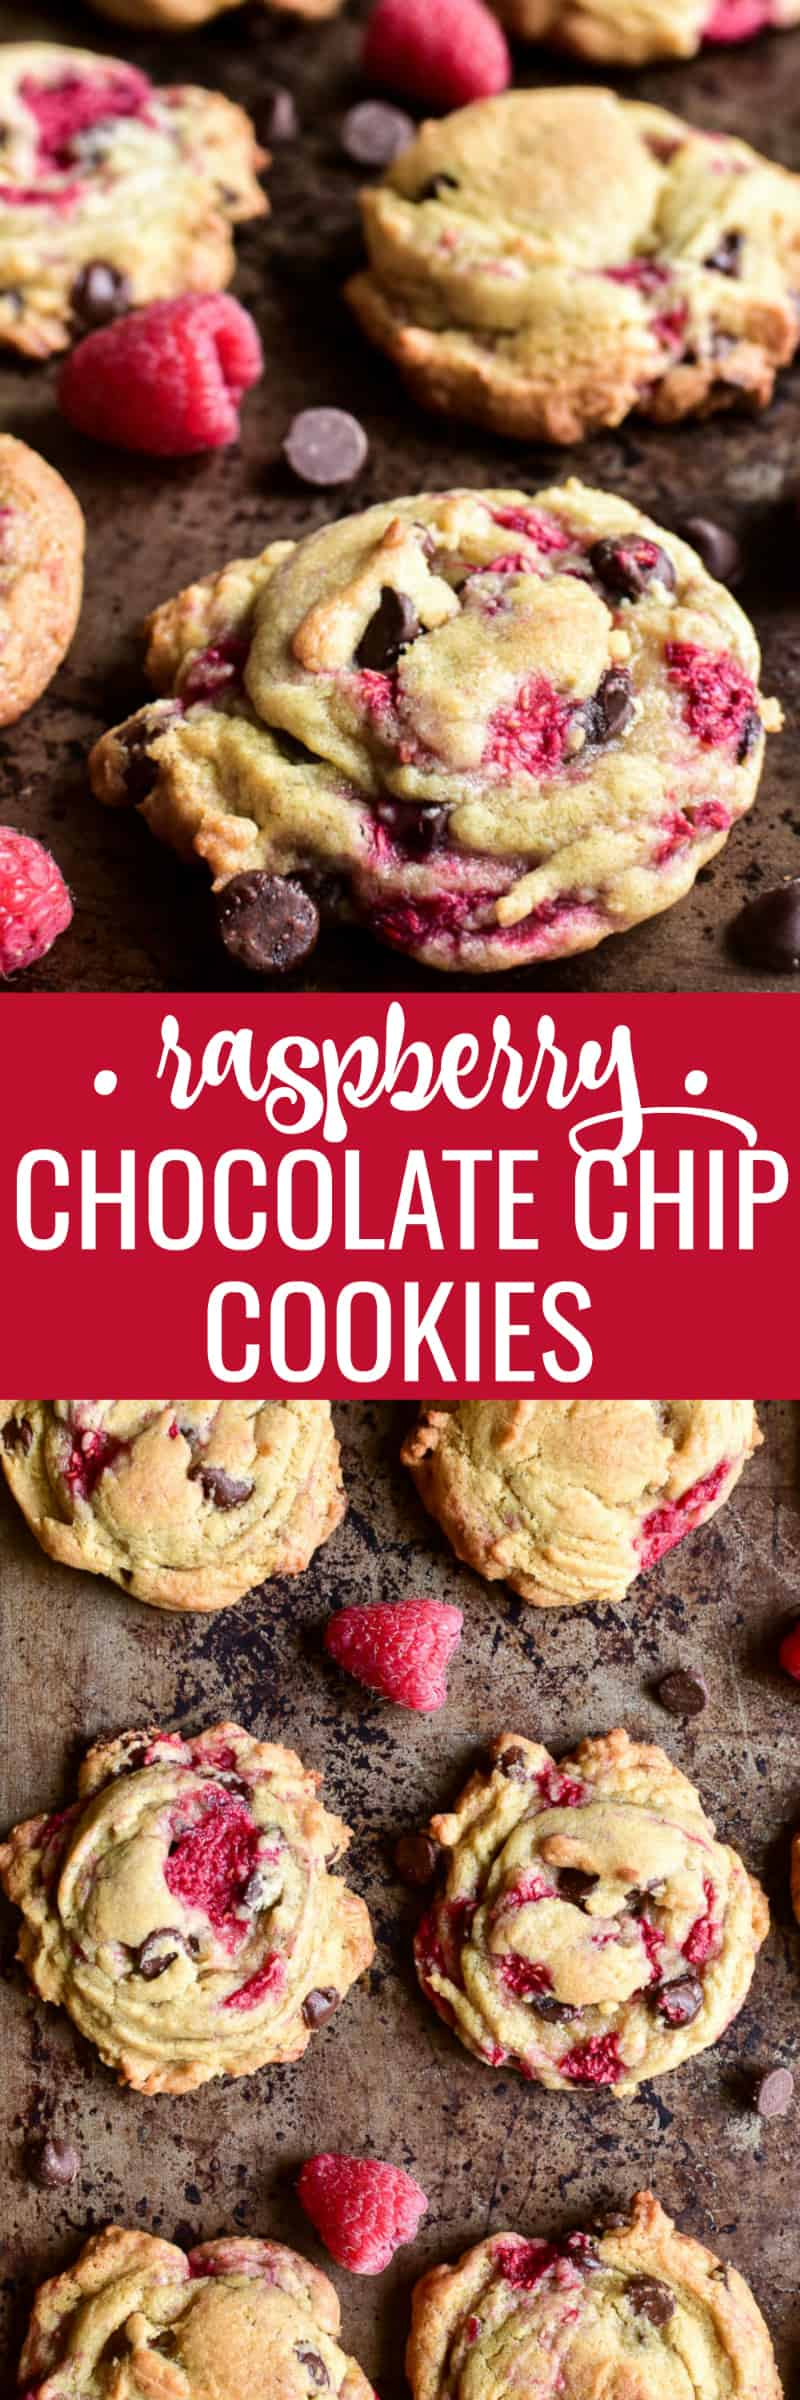 Collage image of Raspberry Chocolate Chip Cookies